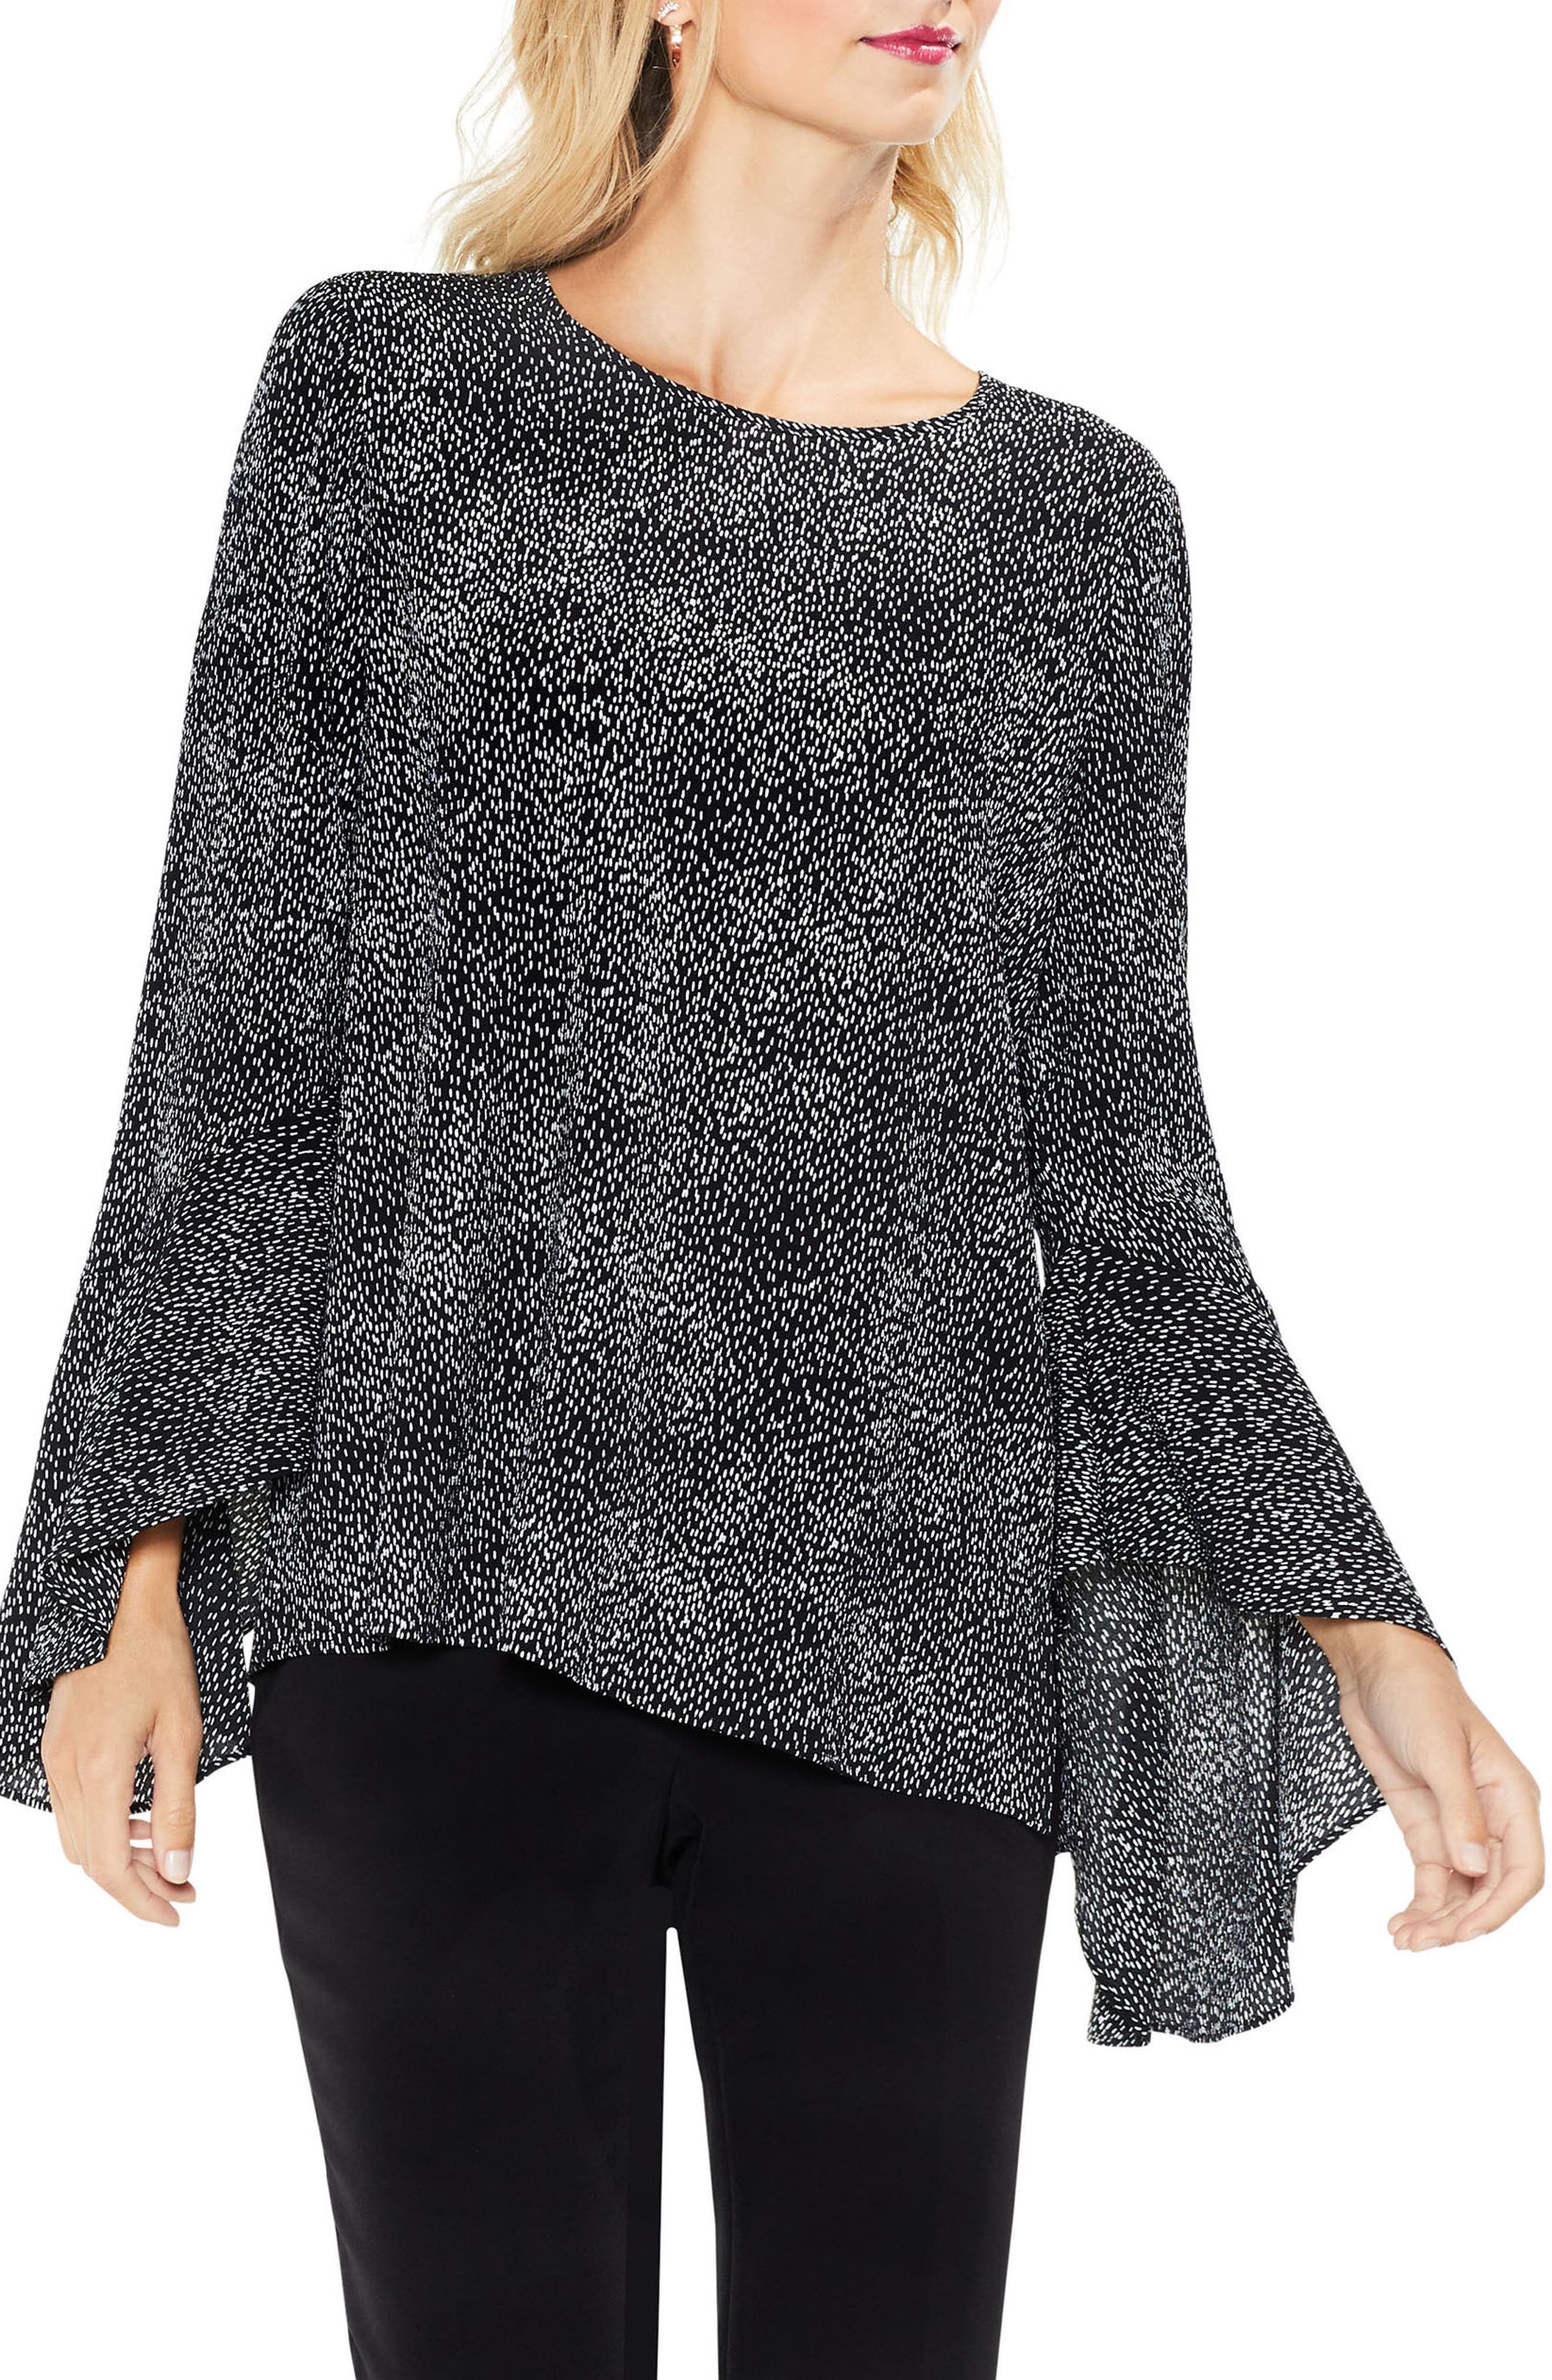 Bell Sleeve Dashes Top,                             Main thumbnail 1, color,                             010